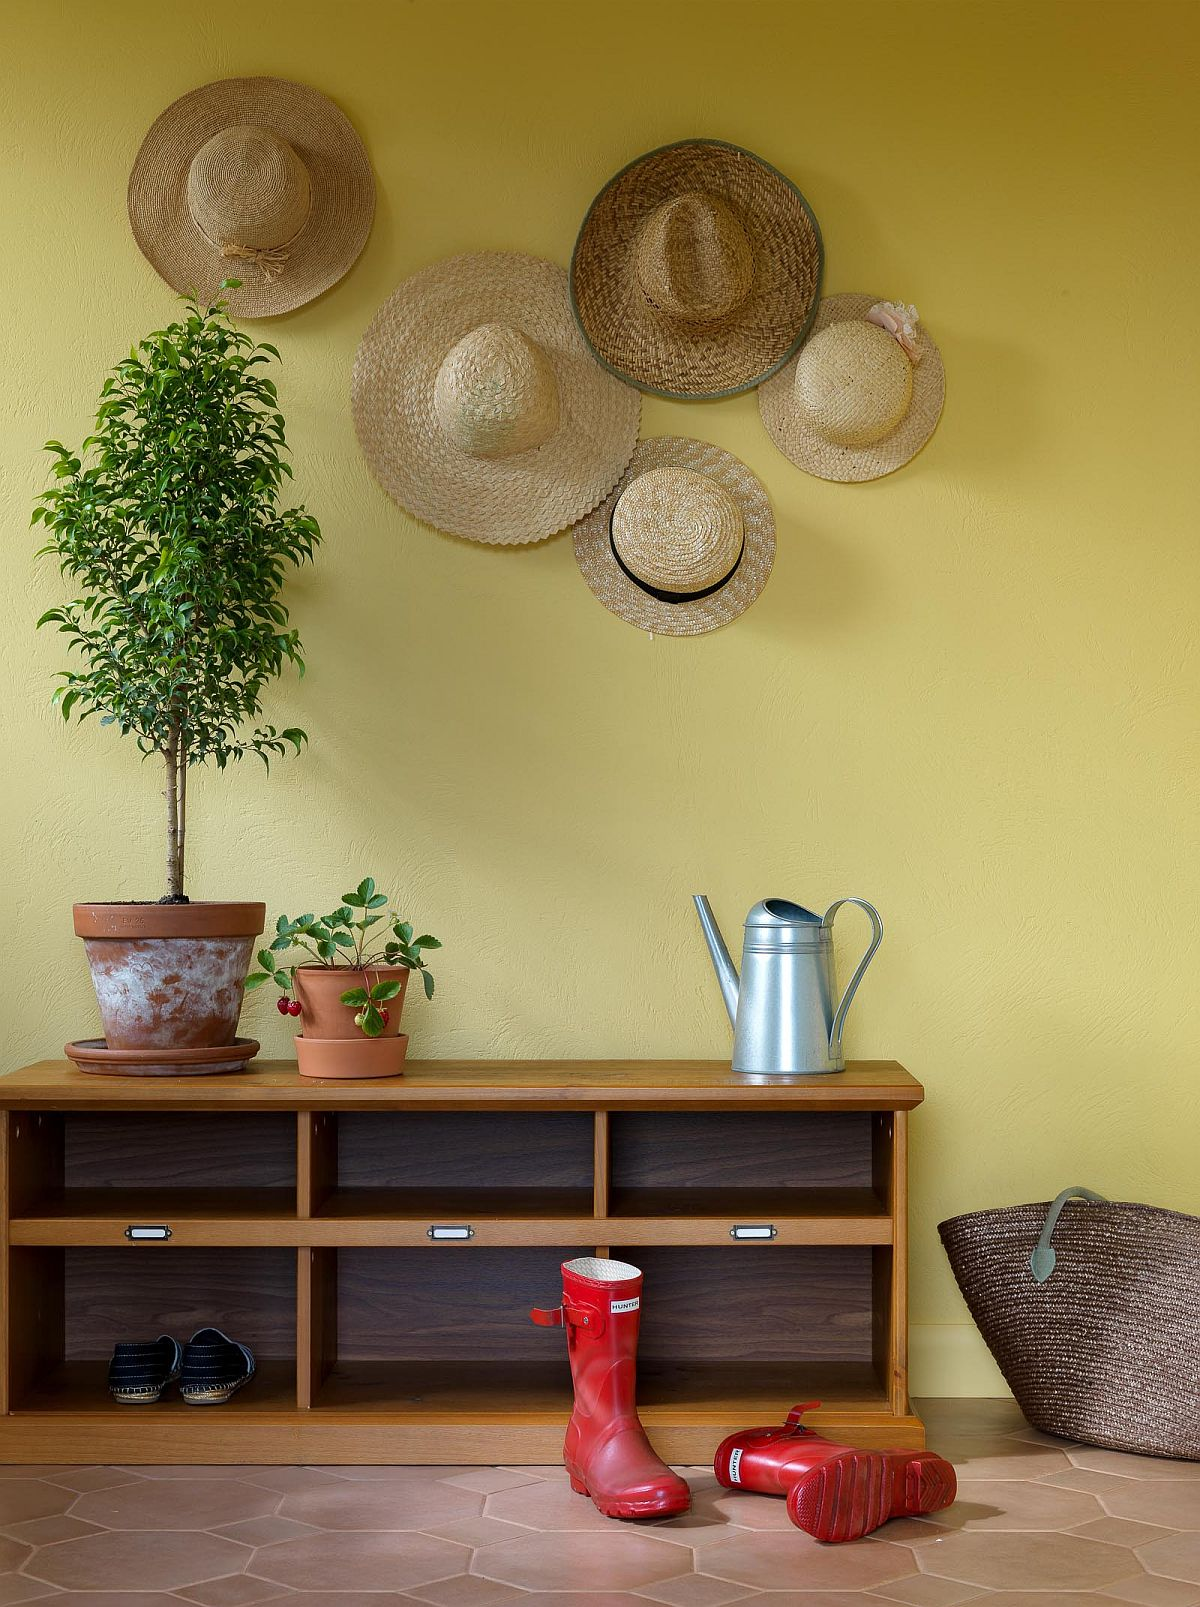 Mellow yellow accent wall for the contemporary entry wih space for boots and hats!